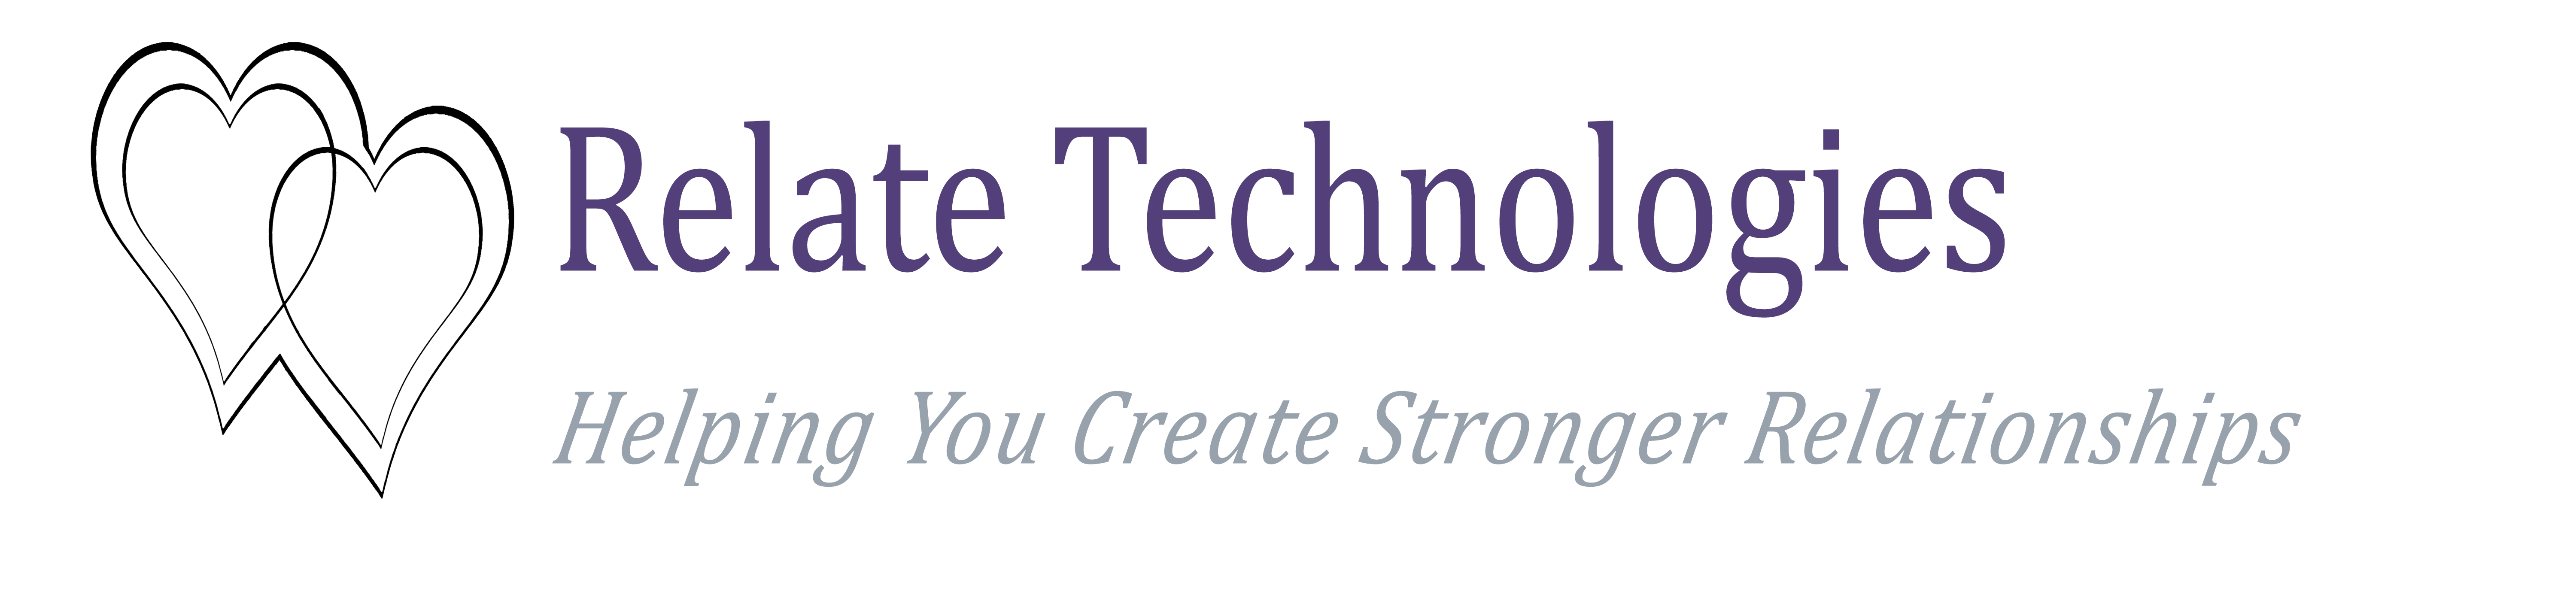 Relate Technologies